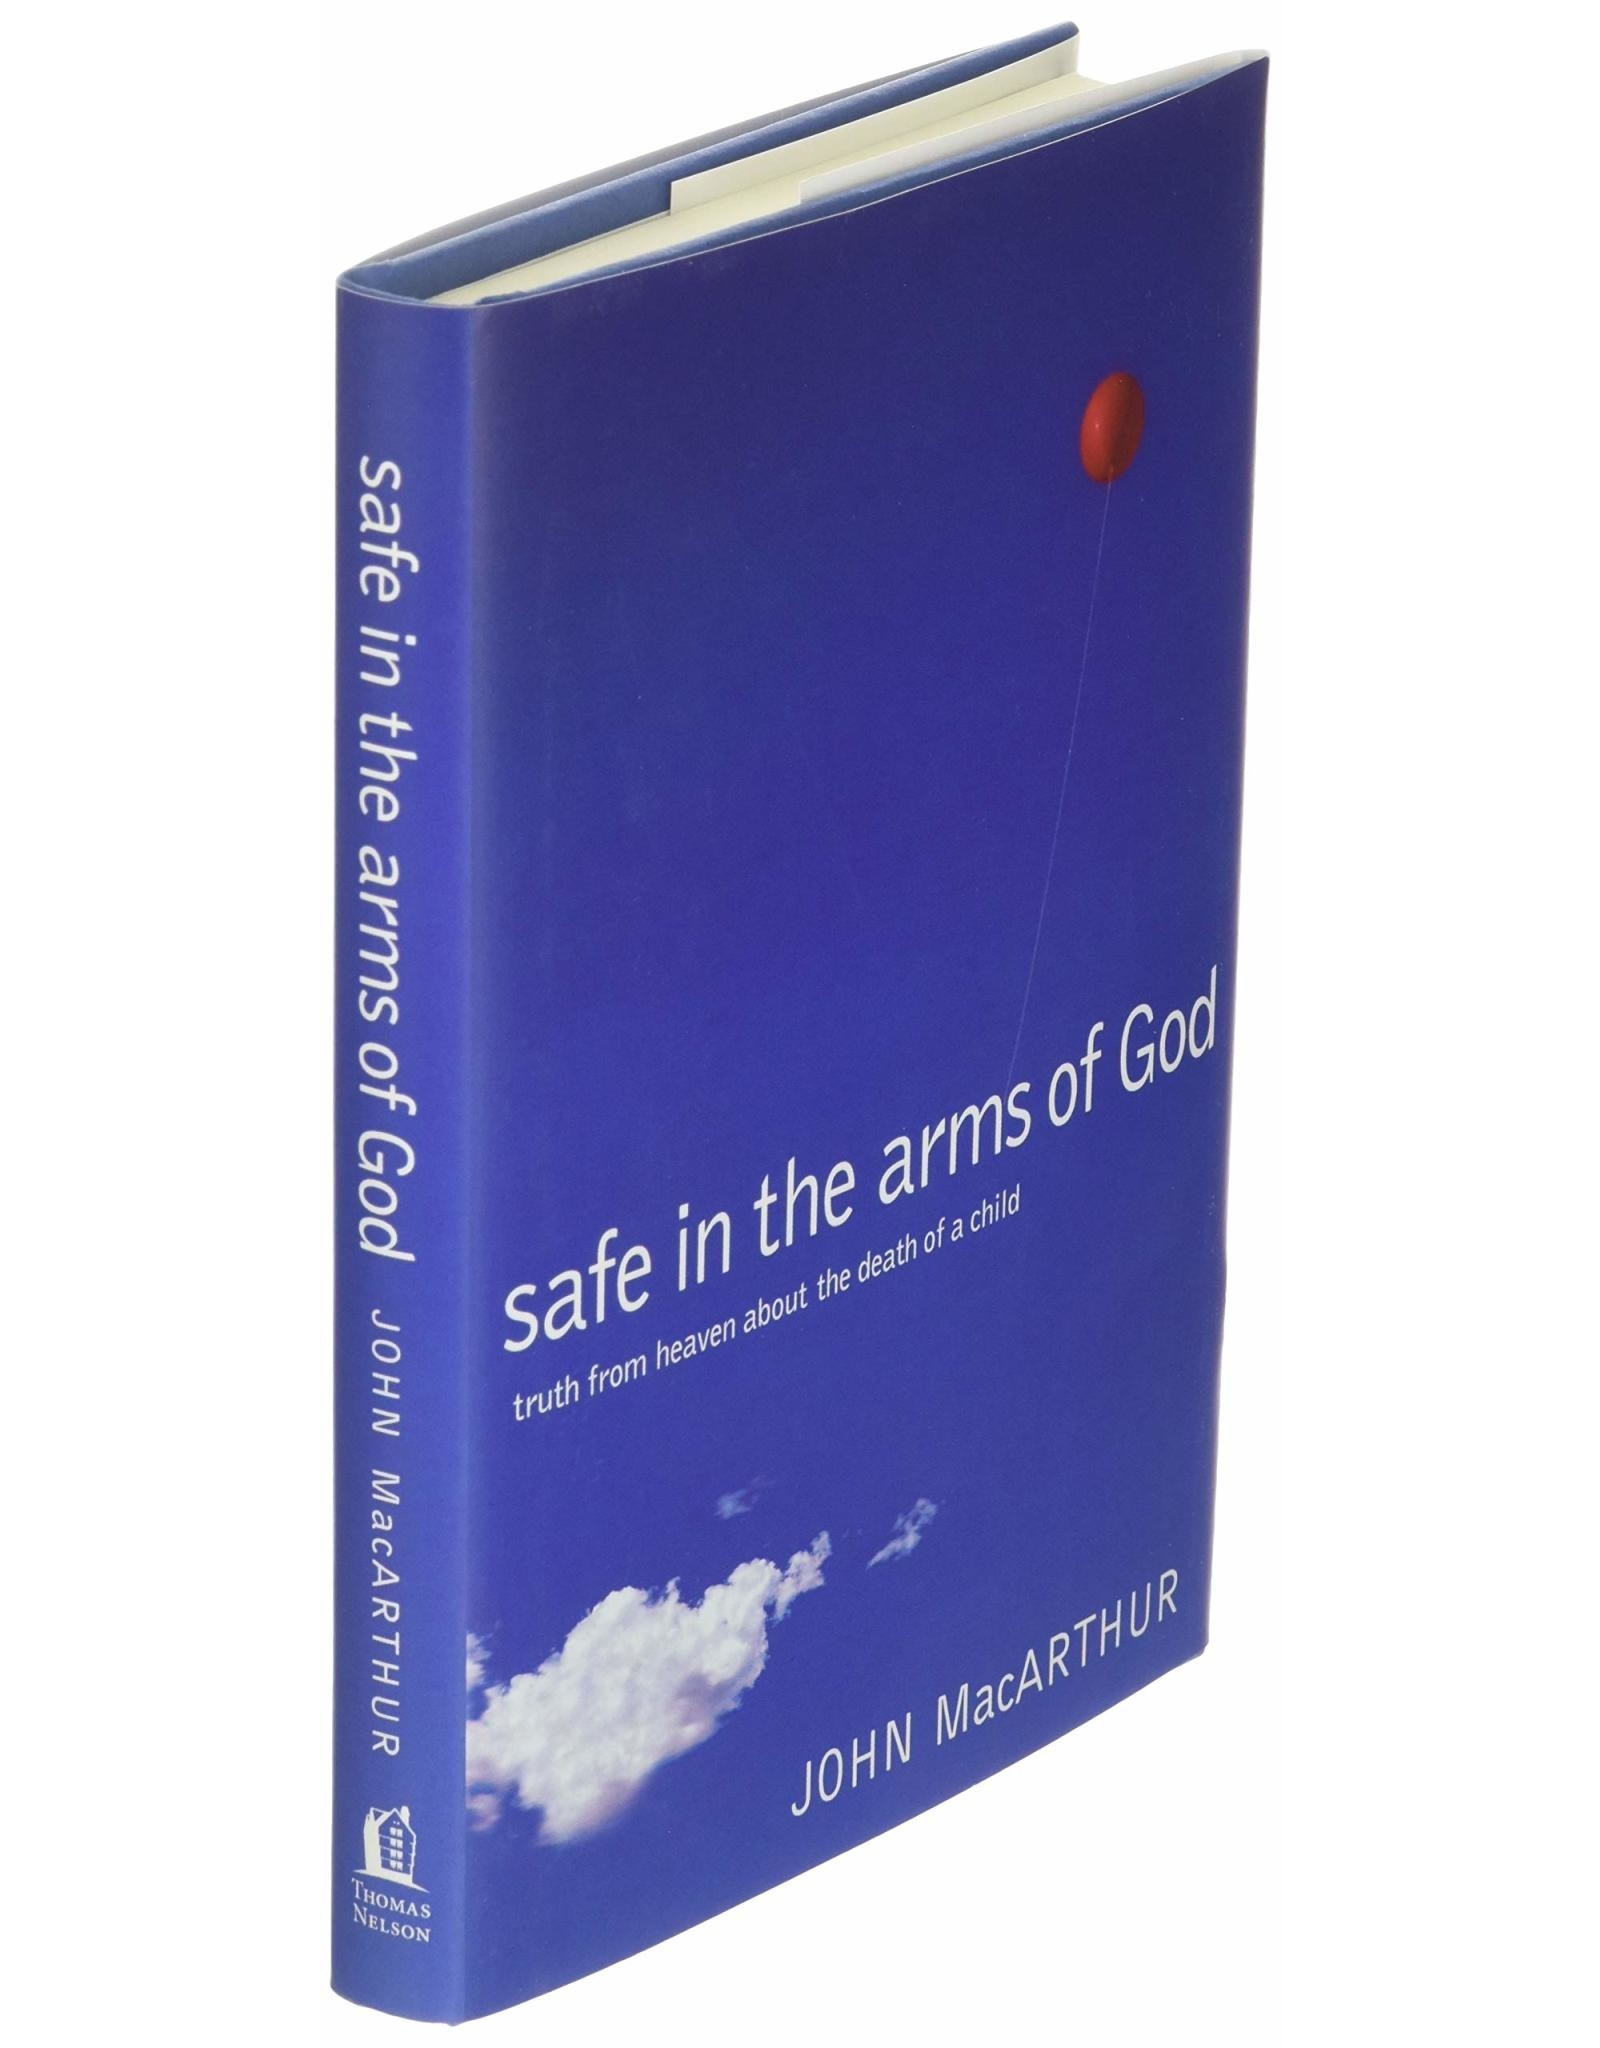 Harper Collins / Thomas Nelson / Zondervan Safe in the Arms of God: Truths from Heaven About the Death of a Child